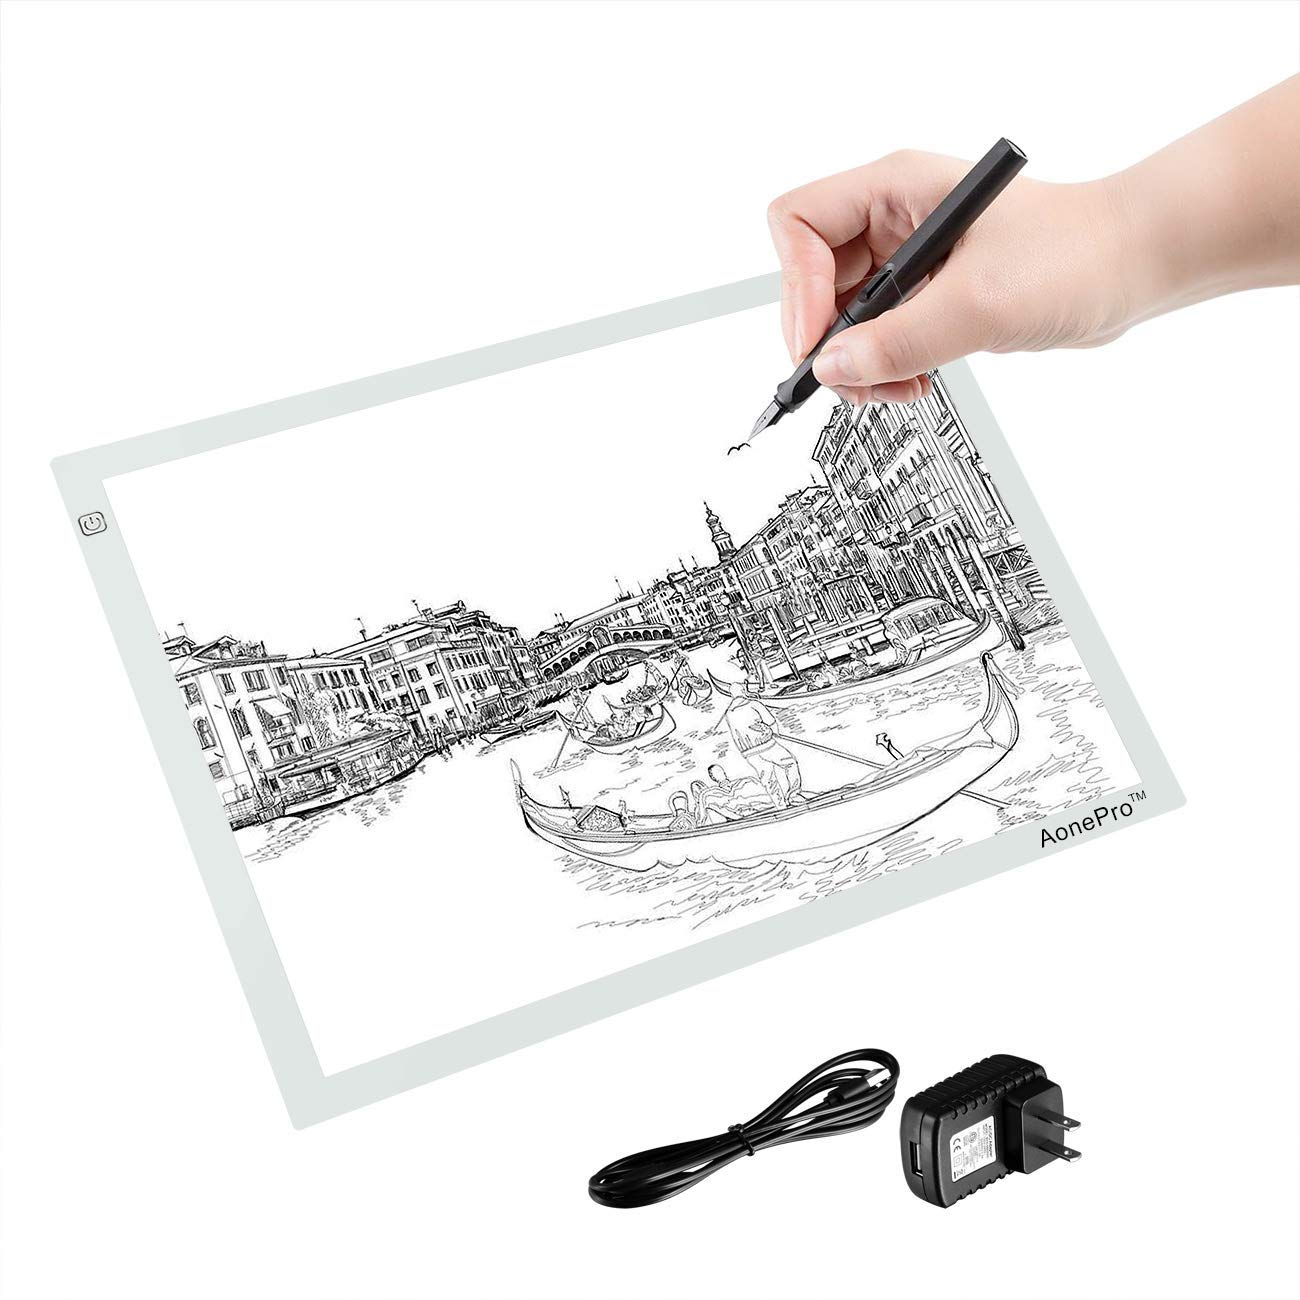 A3 LED Light Box Tracing Pad USB Powered Ultra-Thin 19 inch Drawing Light Pad for Tattoo Drawing, Stencil, Sketching - White by Aonepro